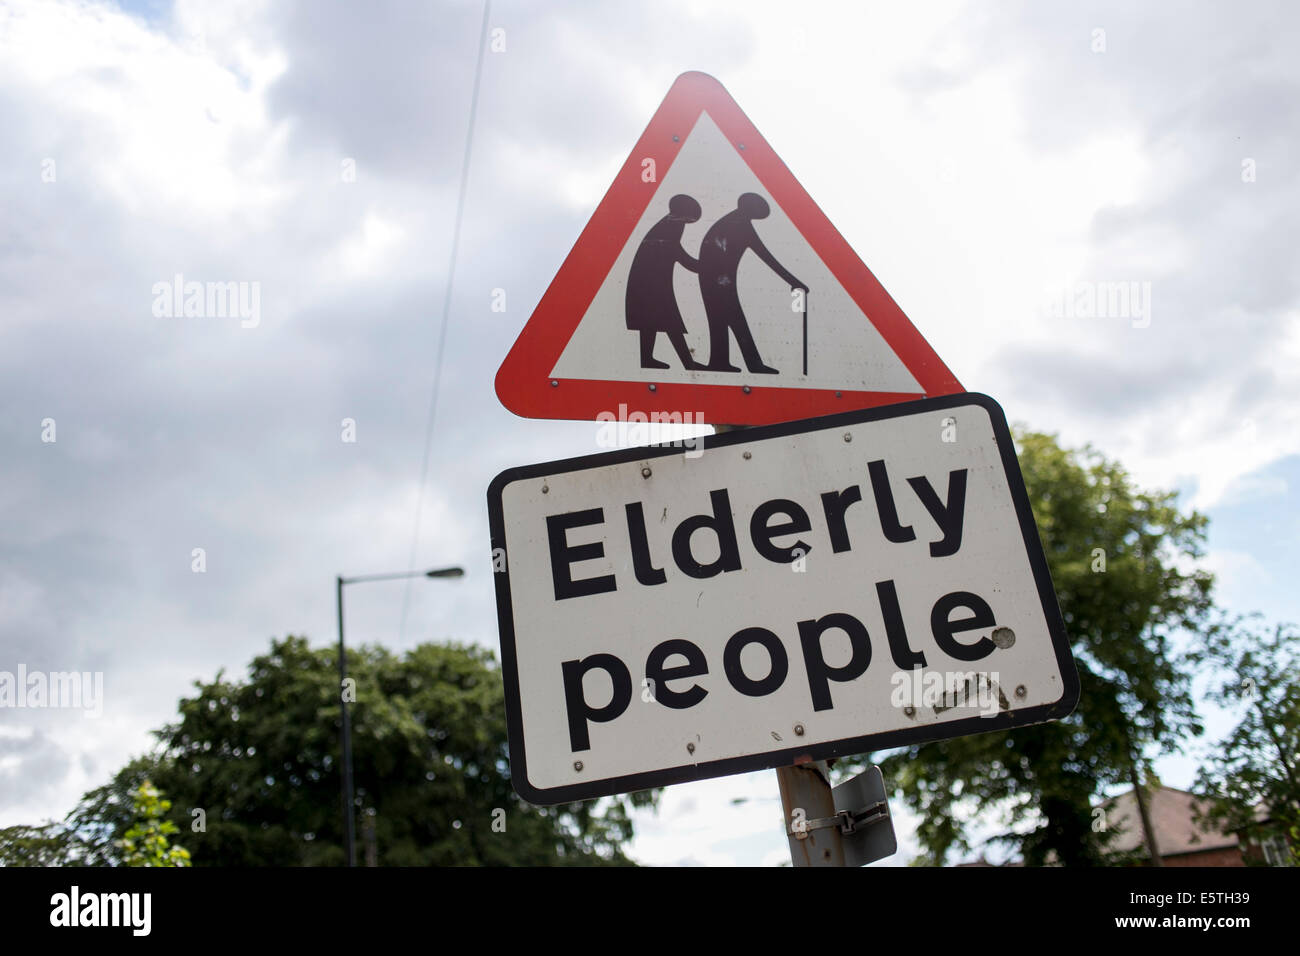 Elderly People Road Traffic Sign - Stock Image